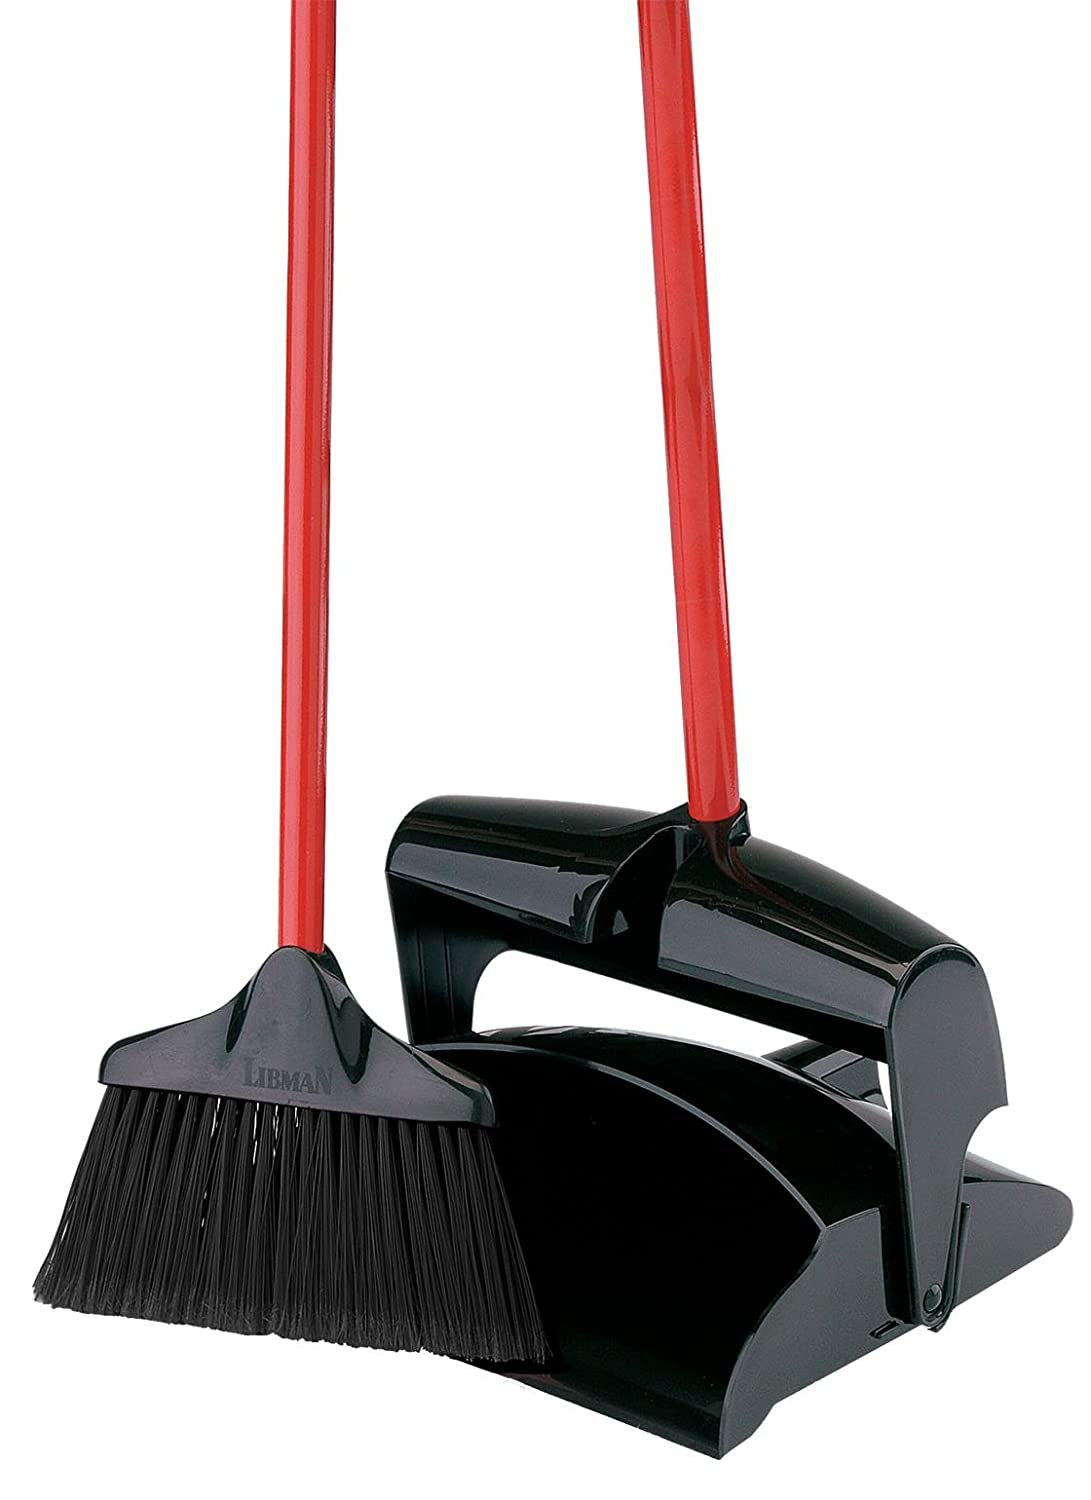 Libman 917 Lobby Broom and Dust Pan (Closed Lid) Libman CO 00917 3260-7434